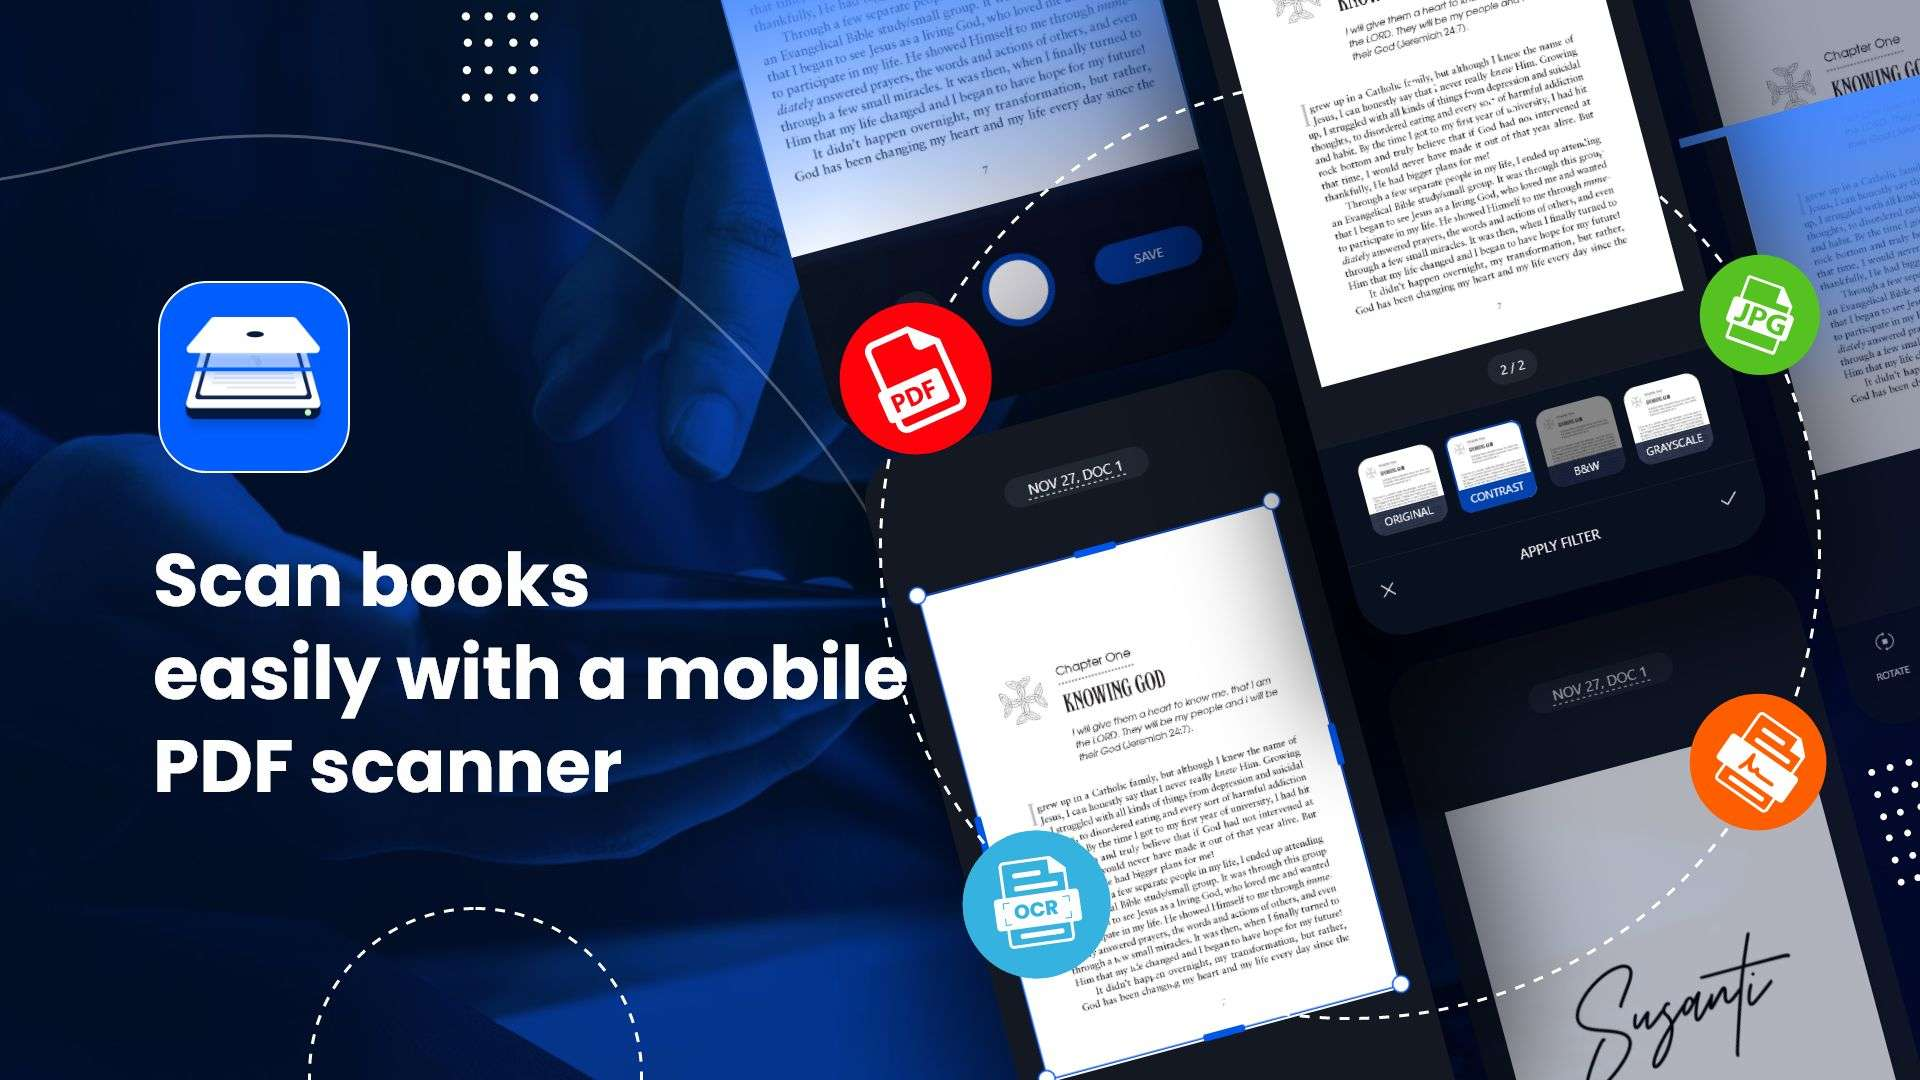 Scan books easily with a mobile PDF scanner